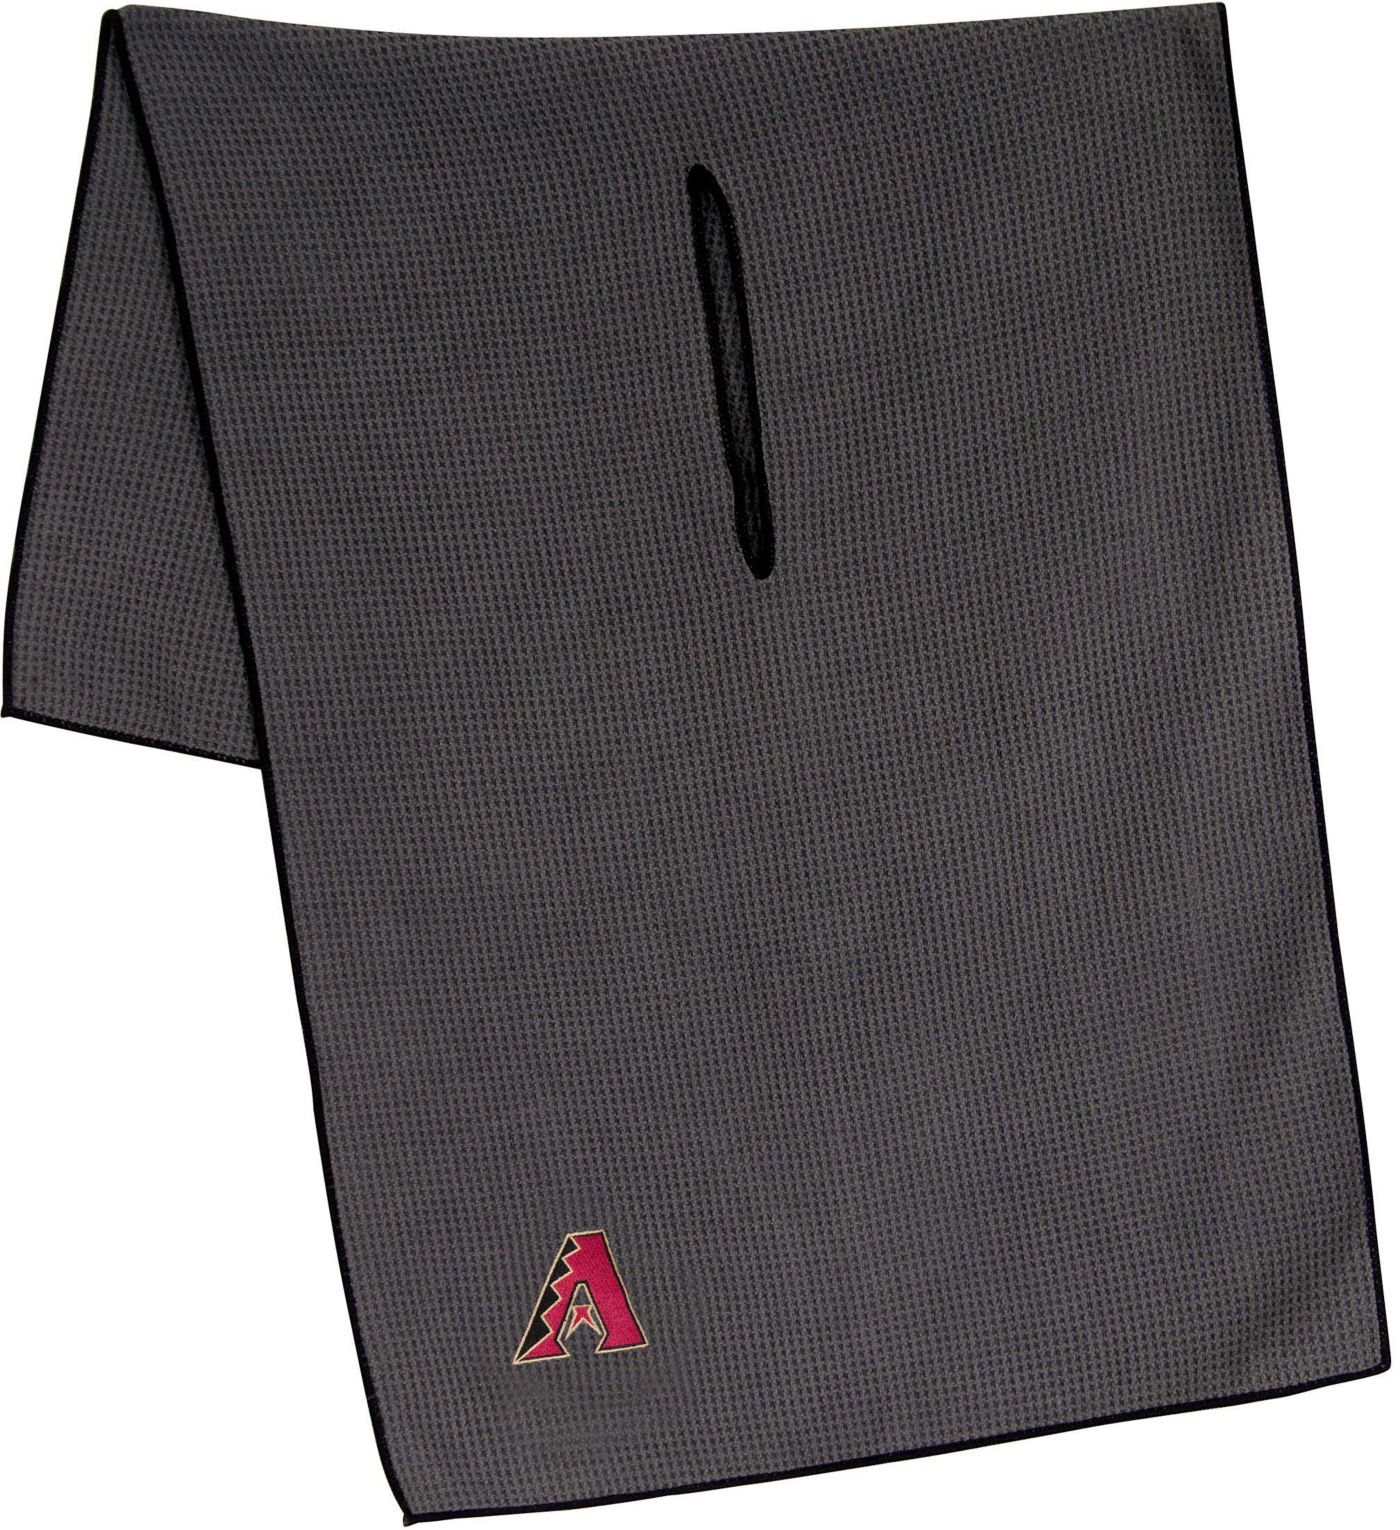 "Team Effort Arizona Diamondbacks 19"" x 41"" Microfiber Golf Towel"